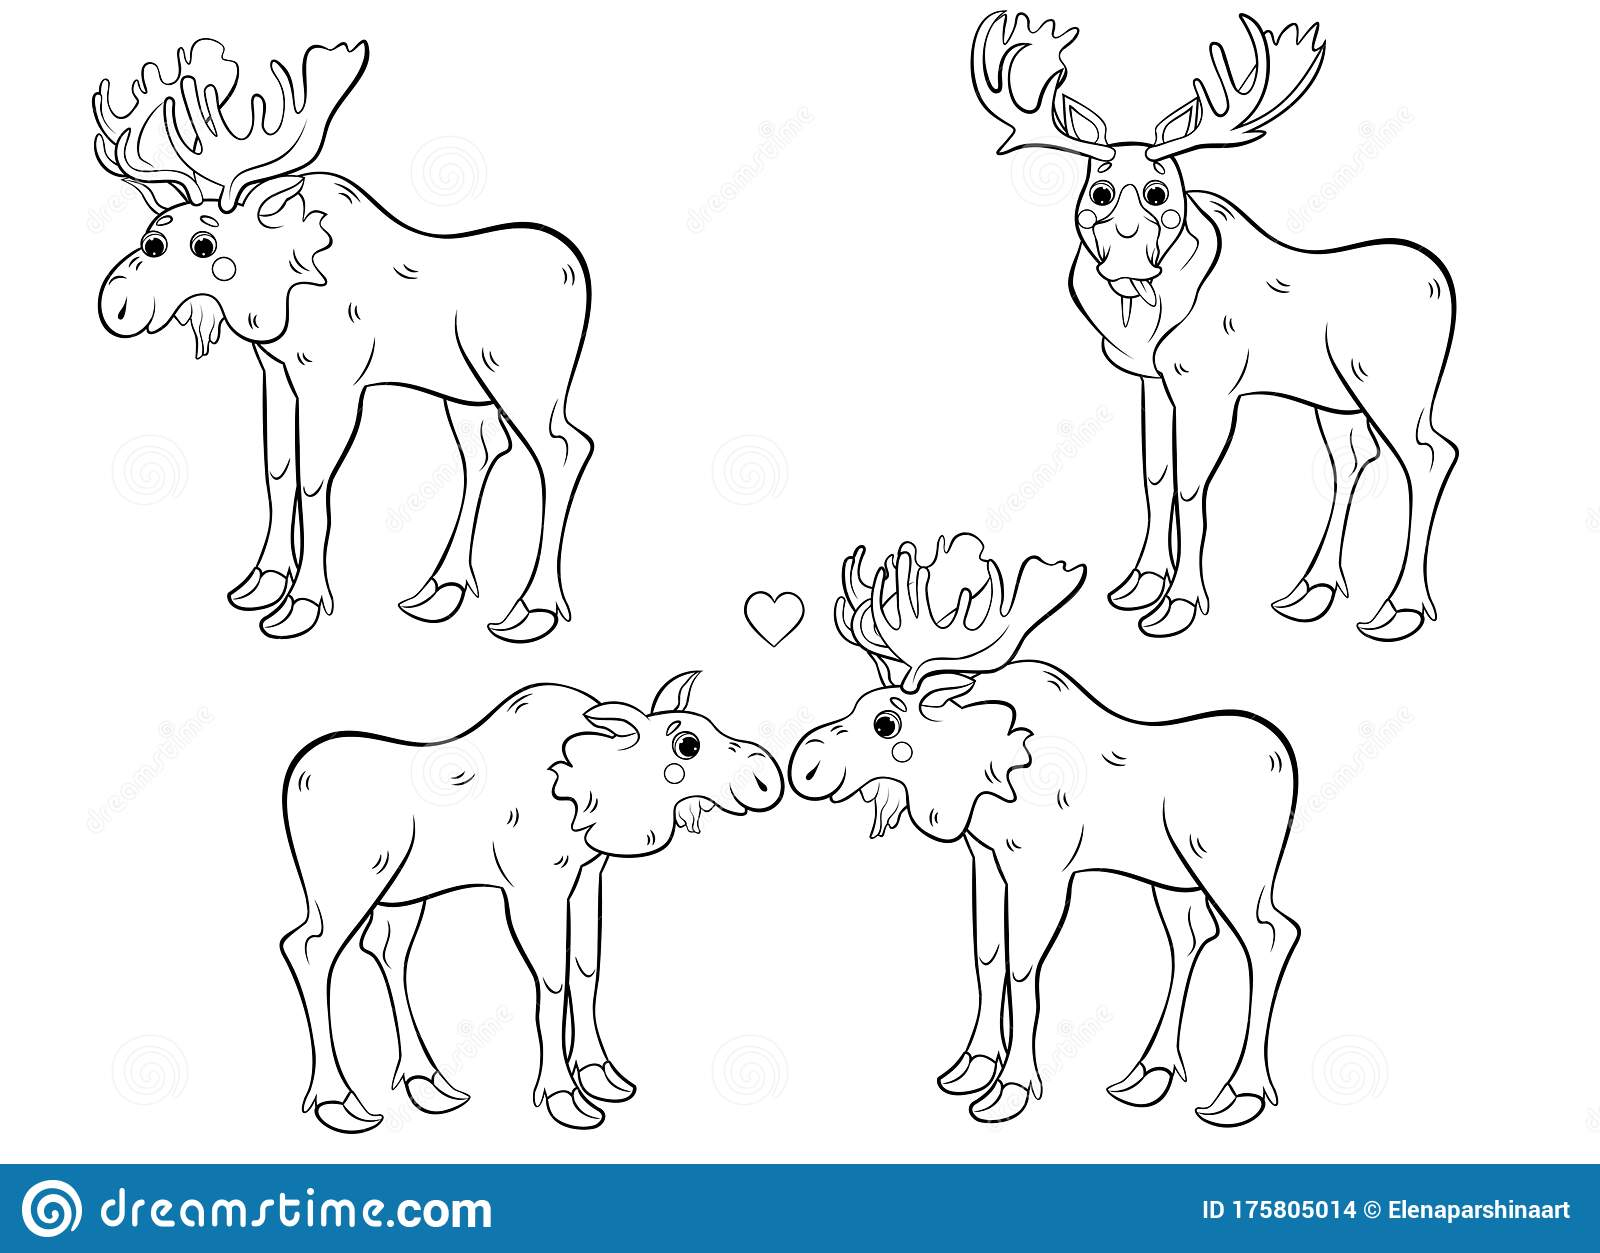 Free Coloring Pages Moose, Download Free Clip Art, Free Clip Art ... | 1253x1600